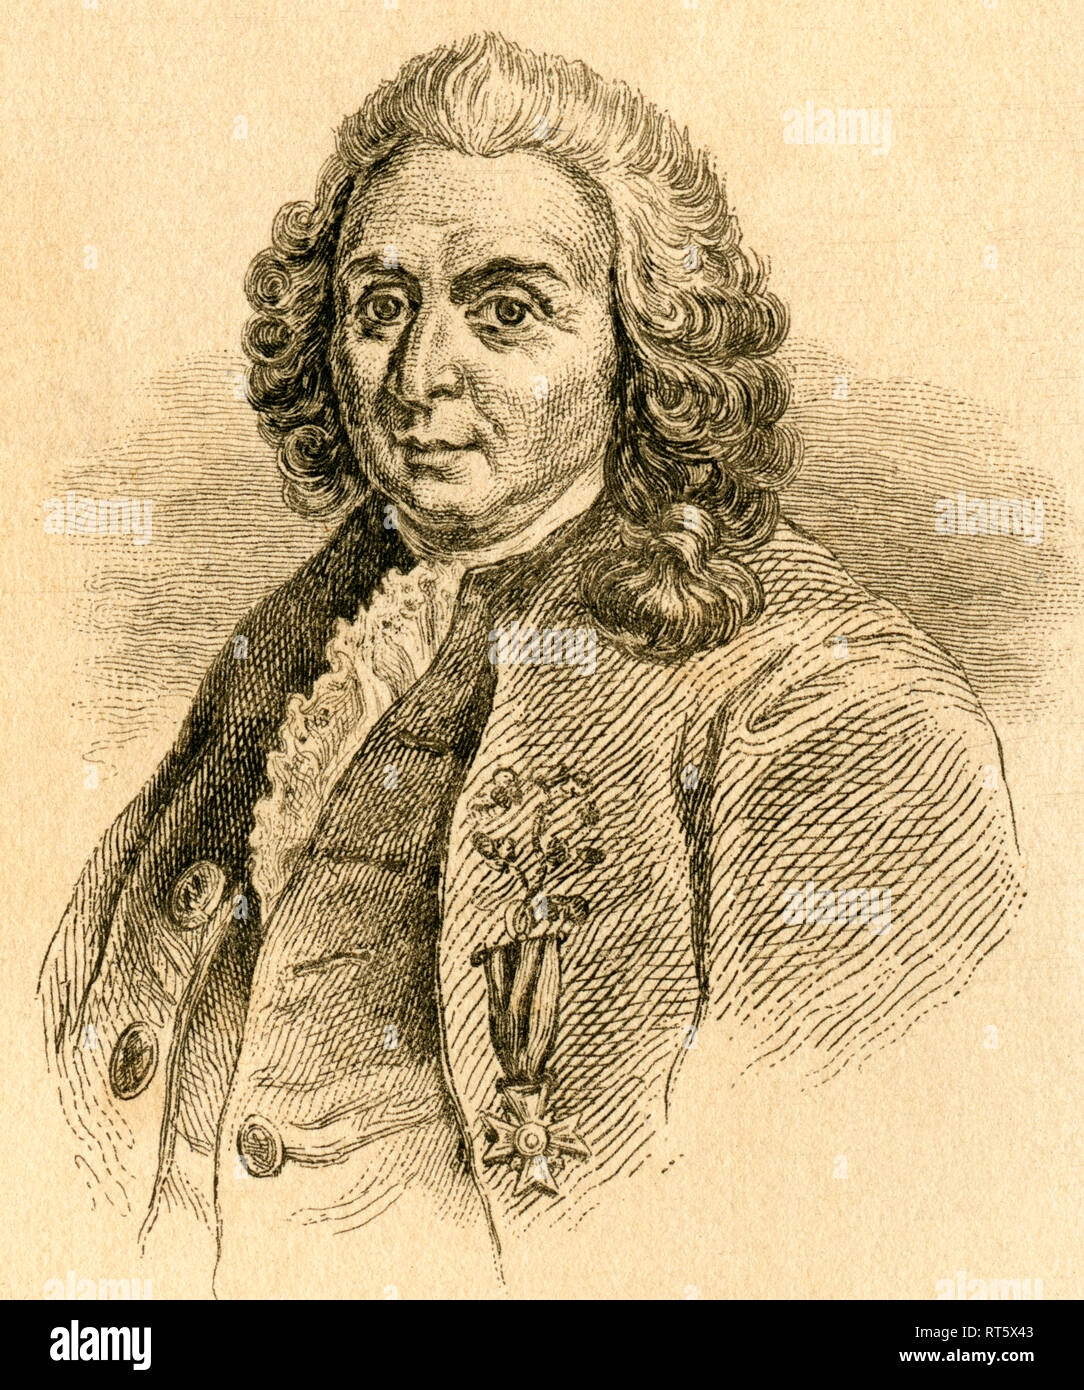 Carl Linnaeus / Carl von Linné, Swedish botanist, 18th century, steel engraving from an book or magazine, about 1830th., Artist's Copyright has not to be cleared - Stock Image